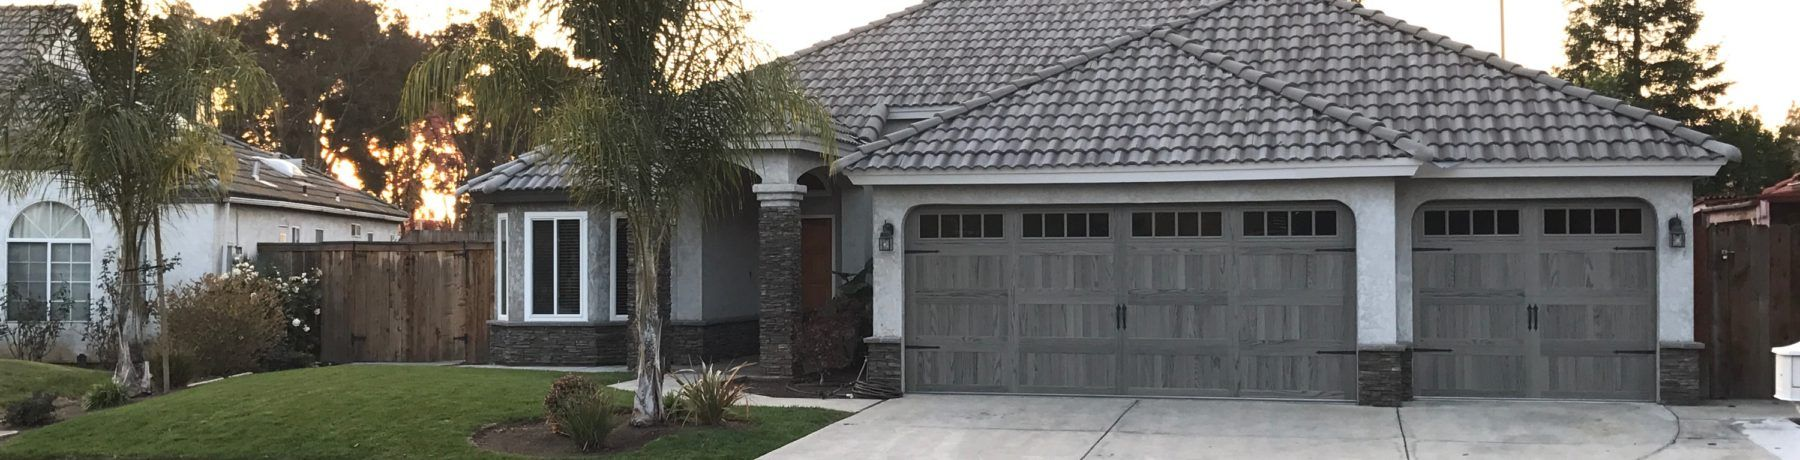 What Do I Need To Know About Buying A Garage Door?